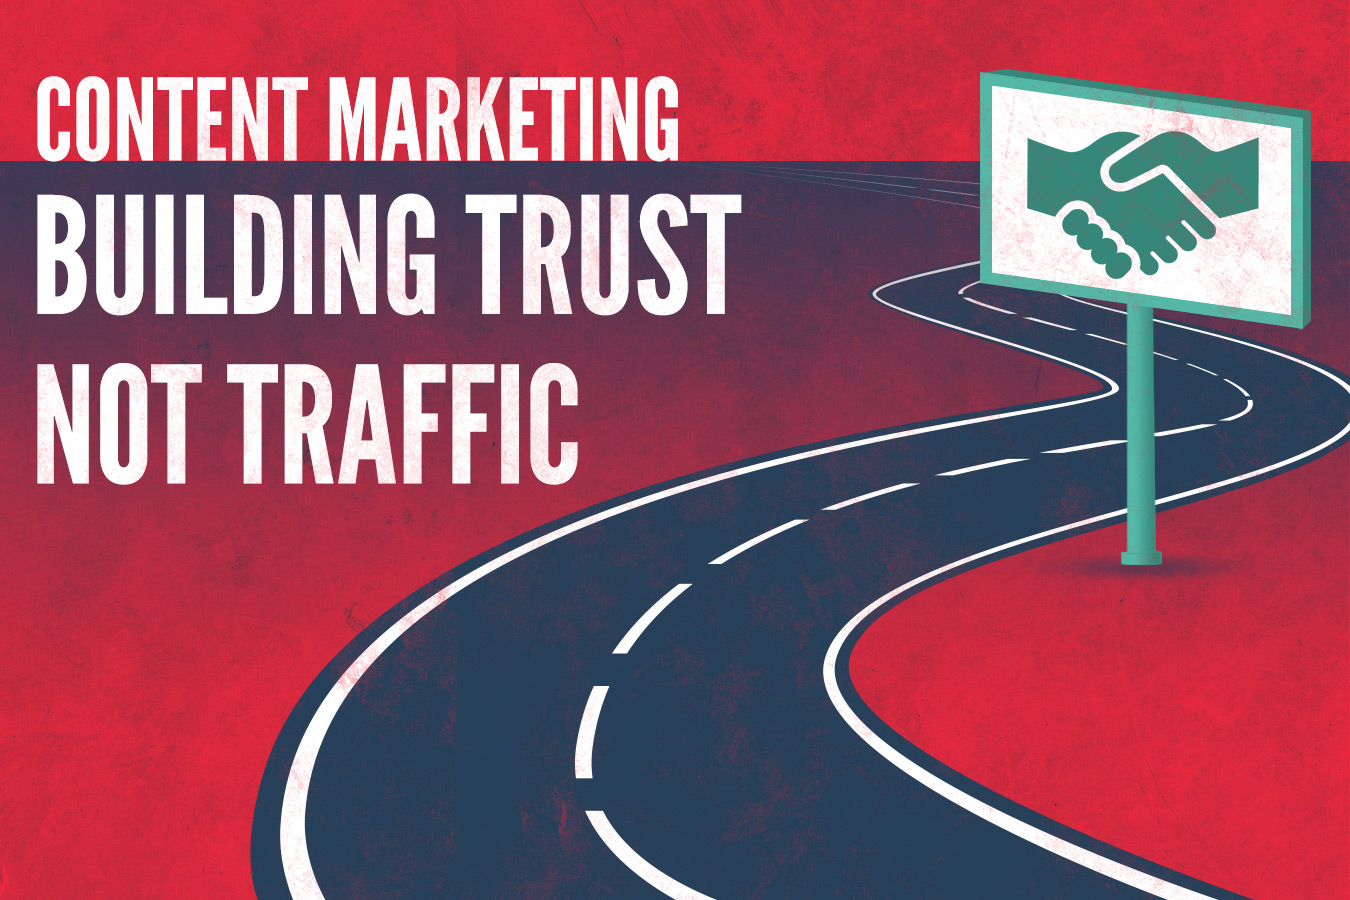 Content Marketing; Build Trust, not Traffic